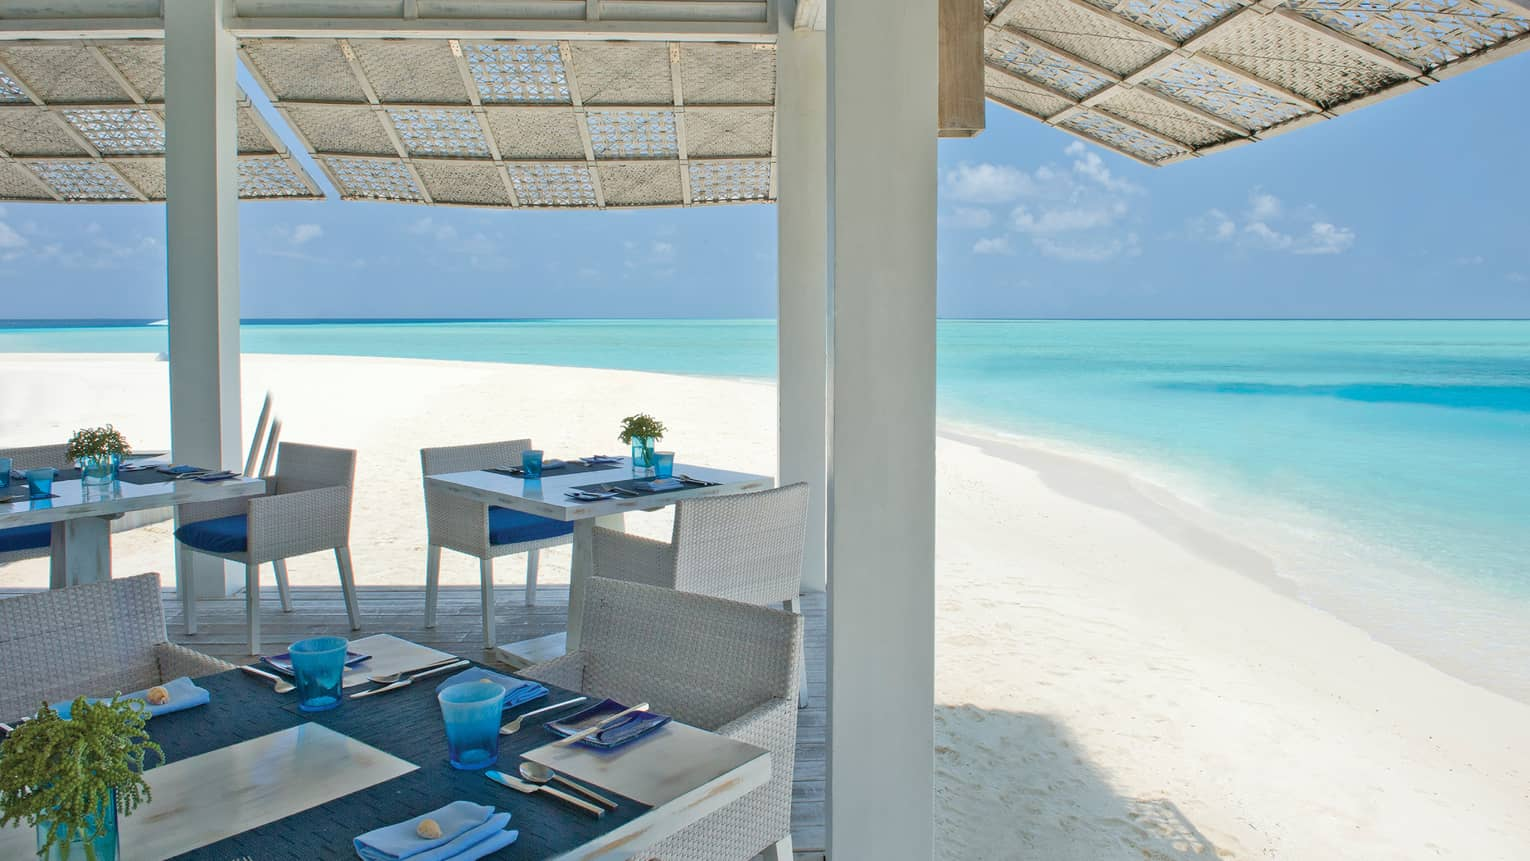 Dining tables, white wicker chairs on pavilion under woven roof by white sand beach, ocean